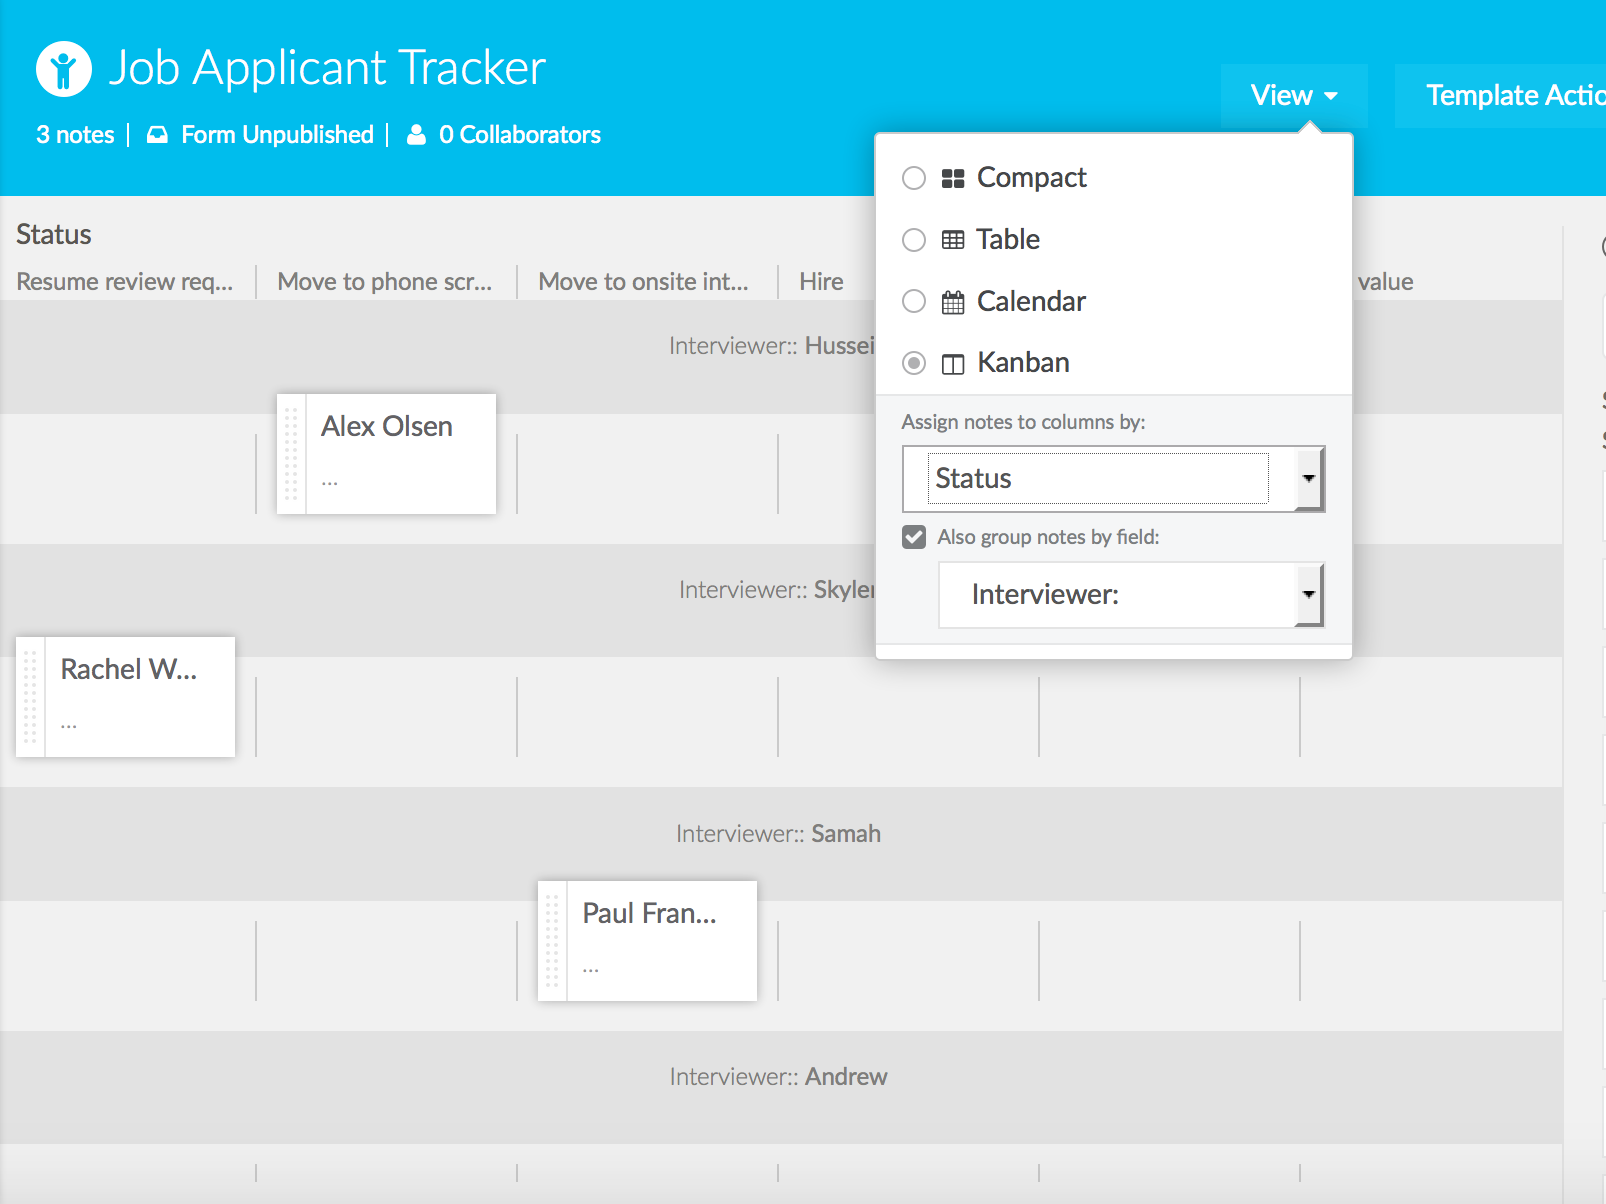 Job applicant tracker